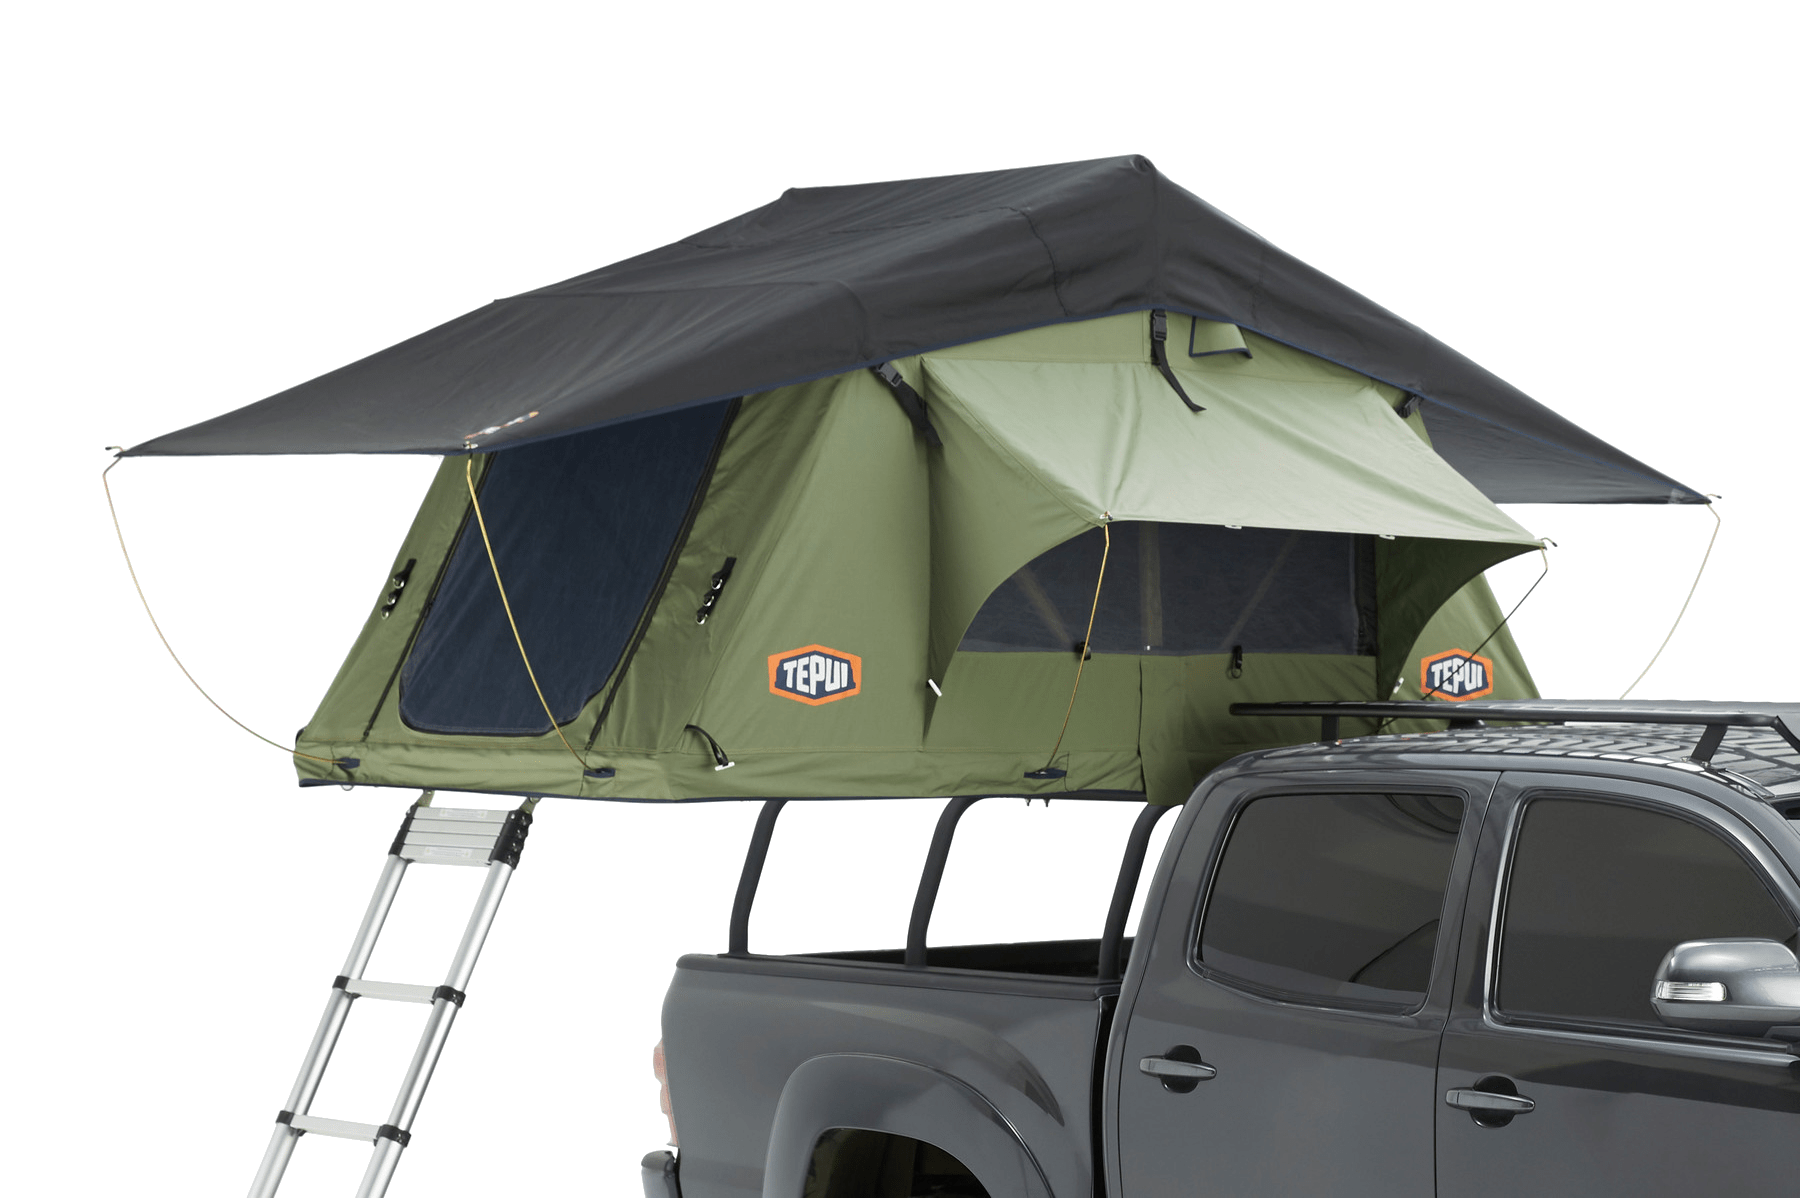 Tepui rooftop tent shown installed on a vehicle in olive green.